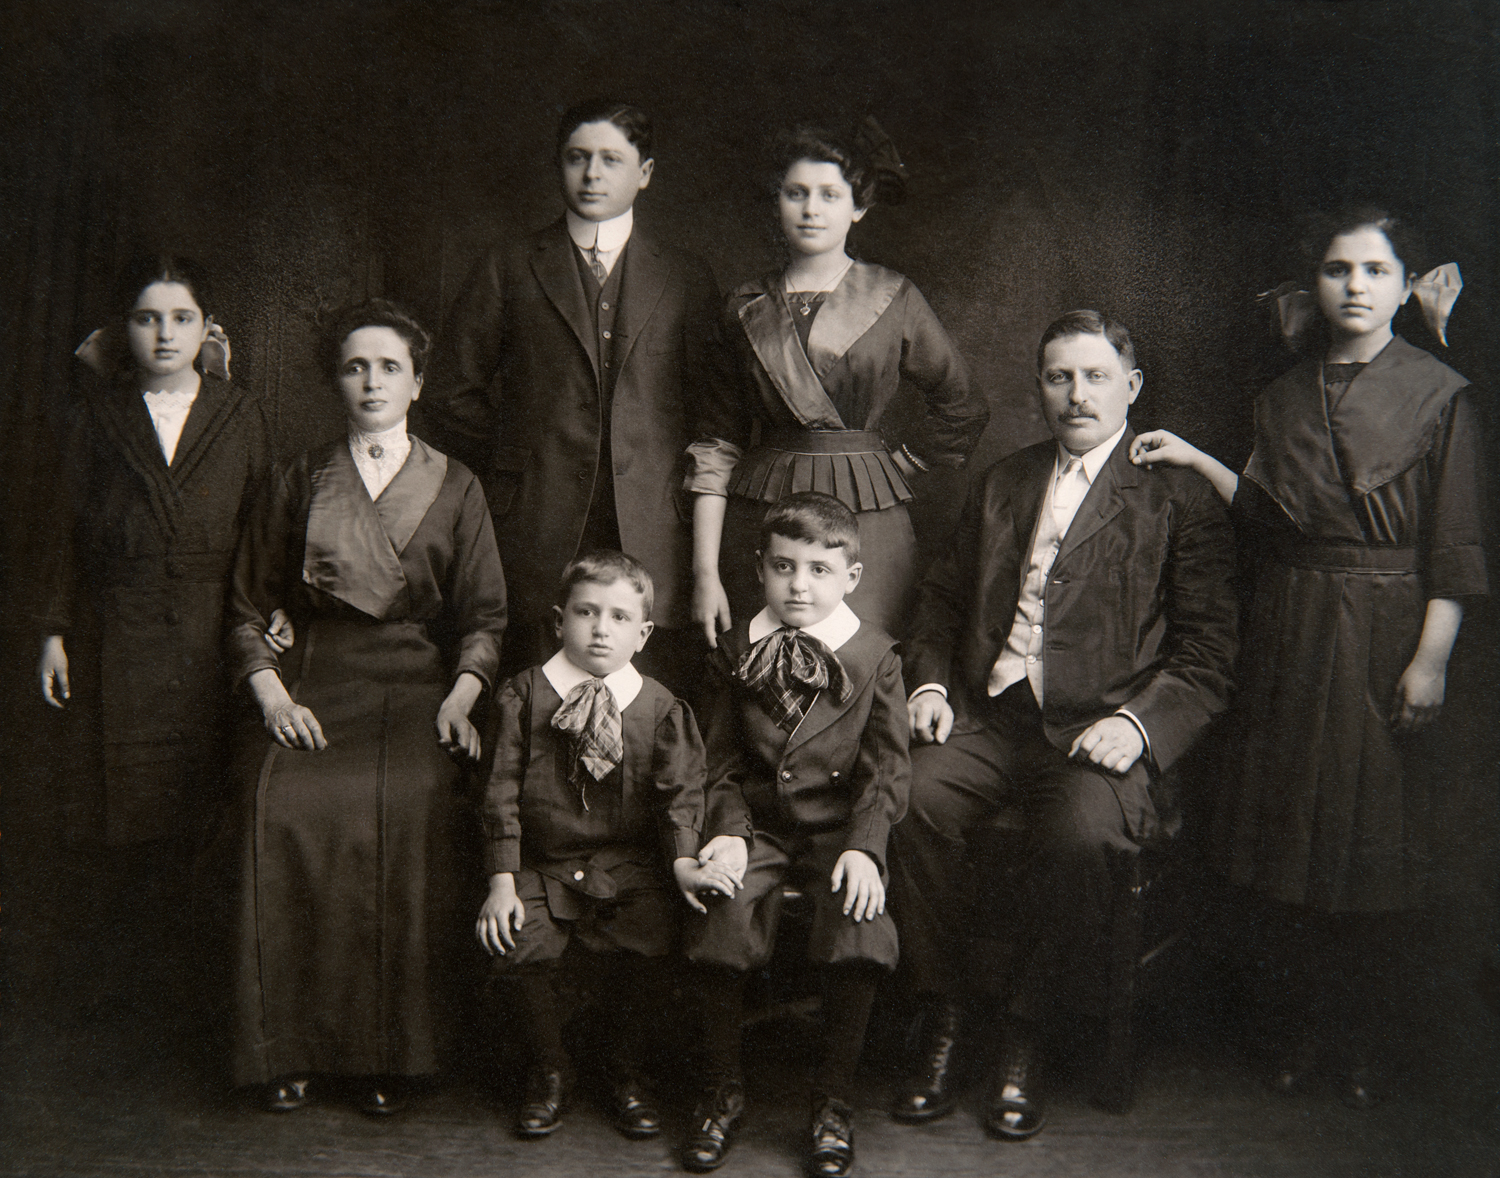 Lazarus Family (Sylvia is standing in the center)